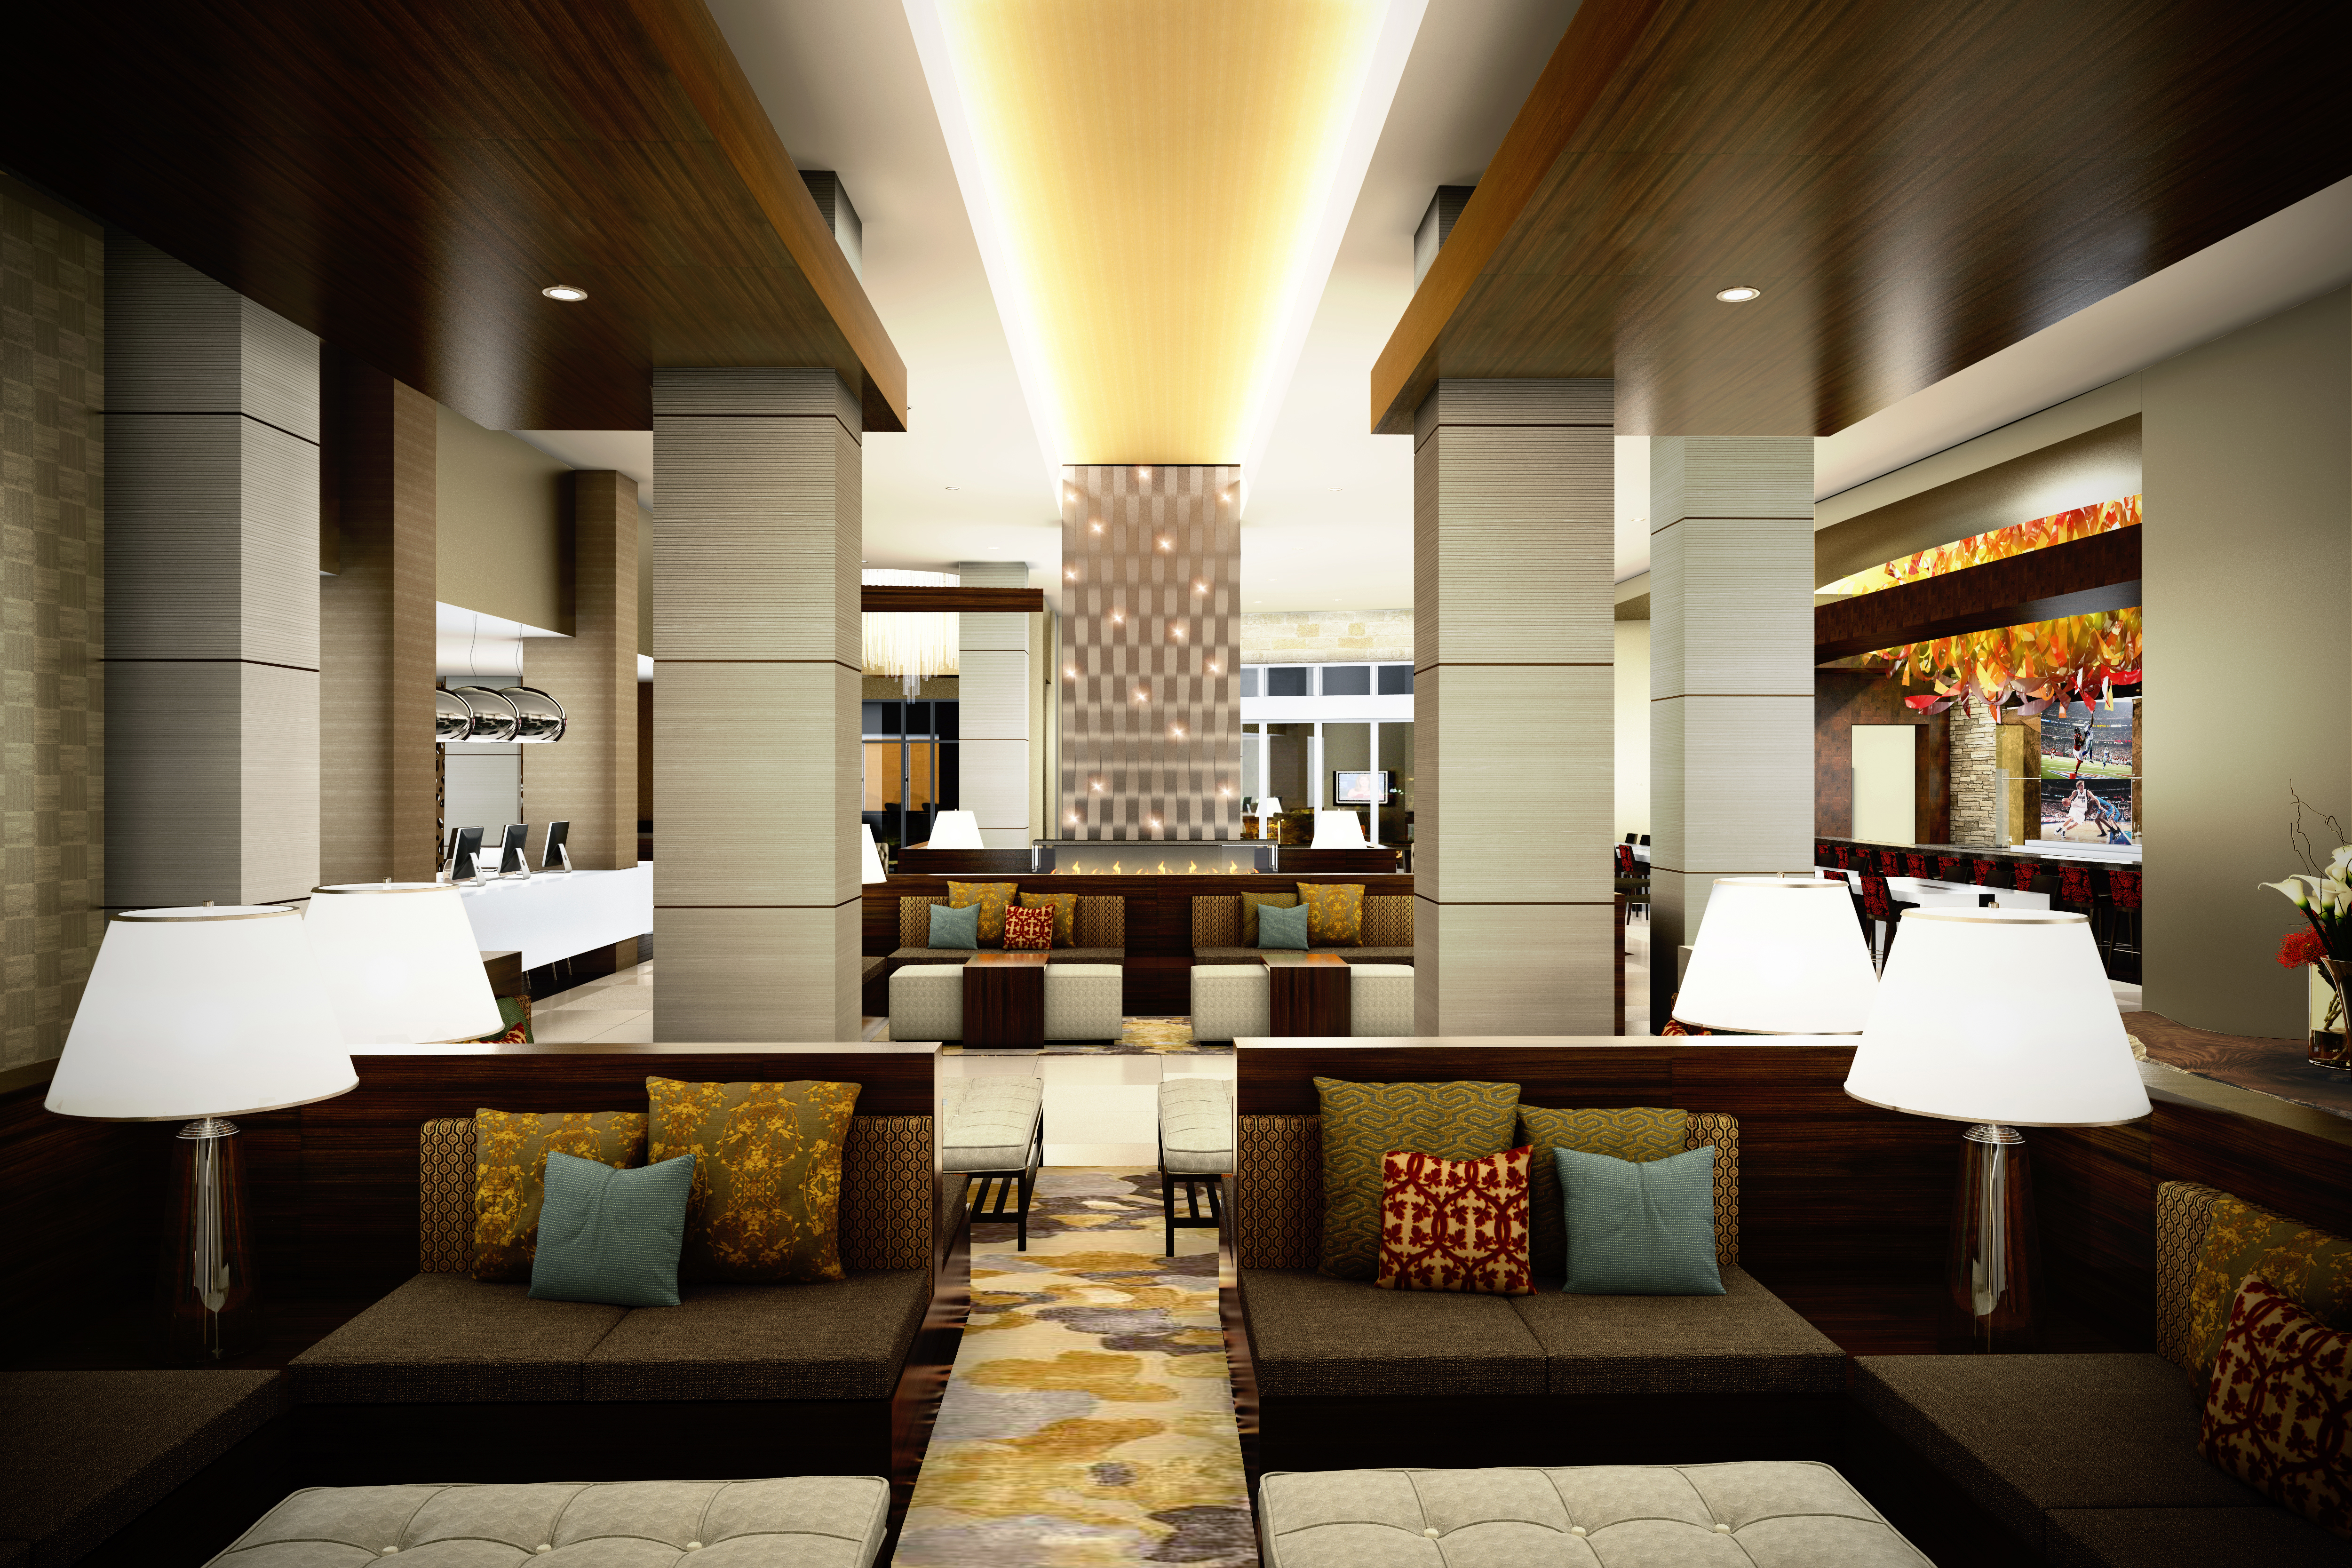 hilton hotels resorts expands deep texas roots 299 room upscale rh businesswire com